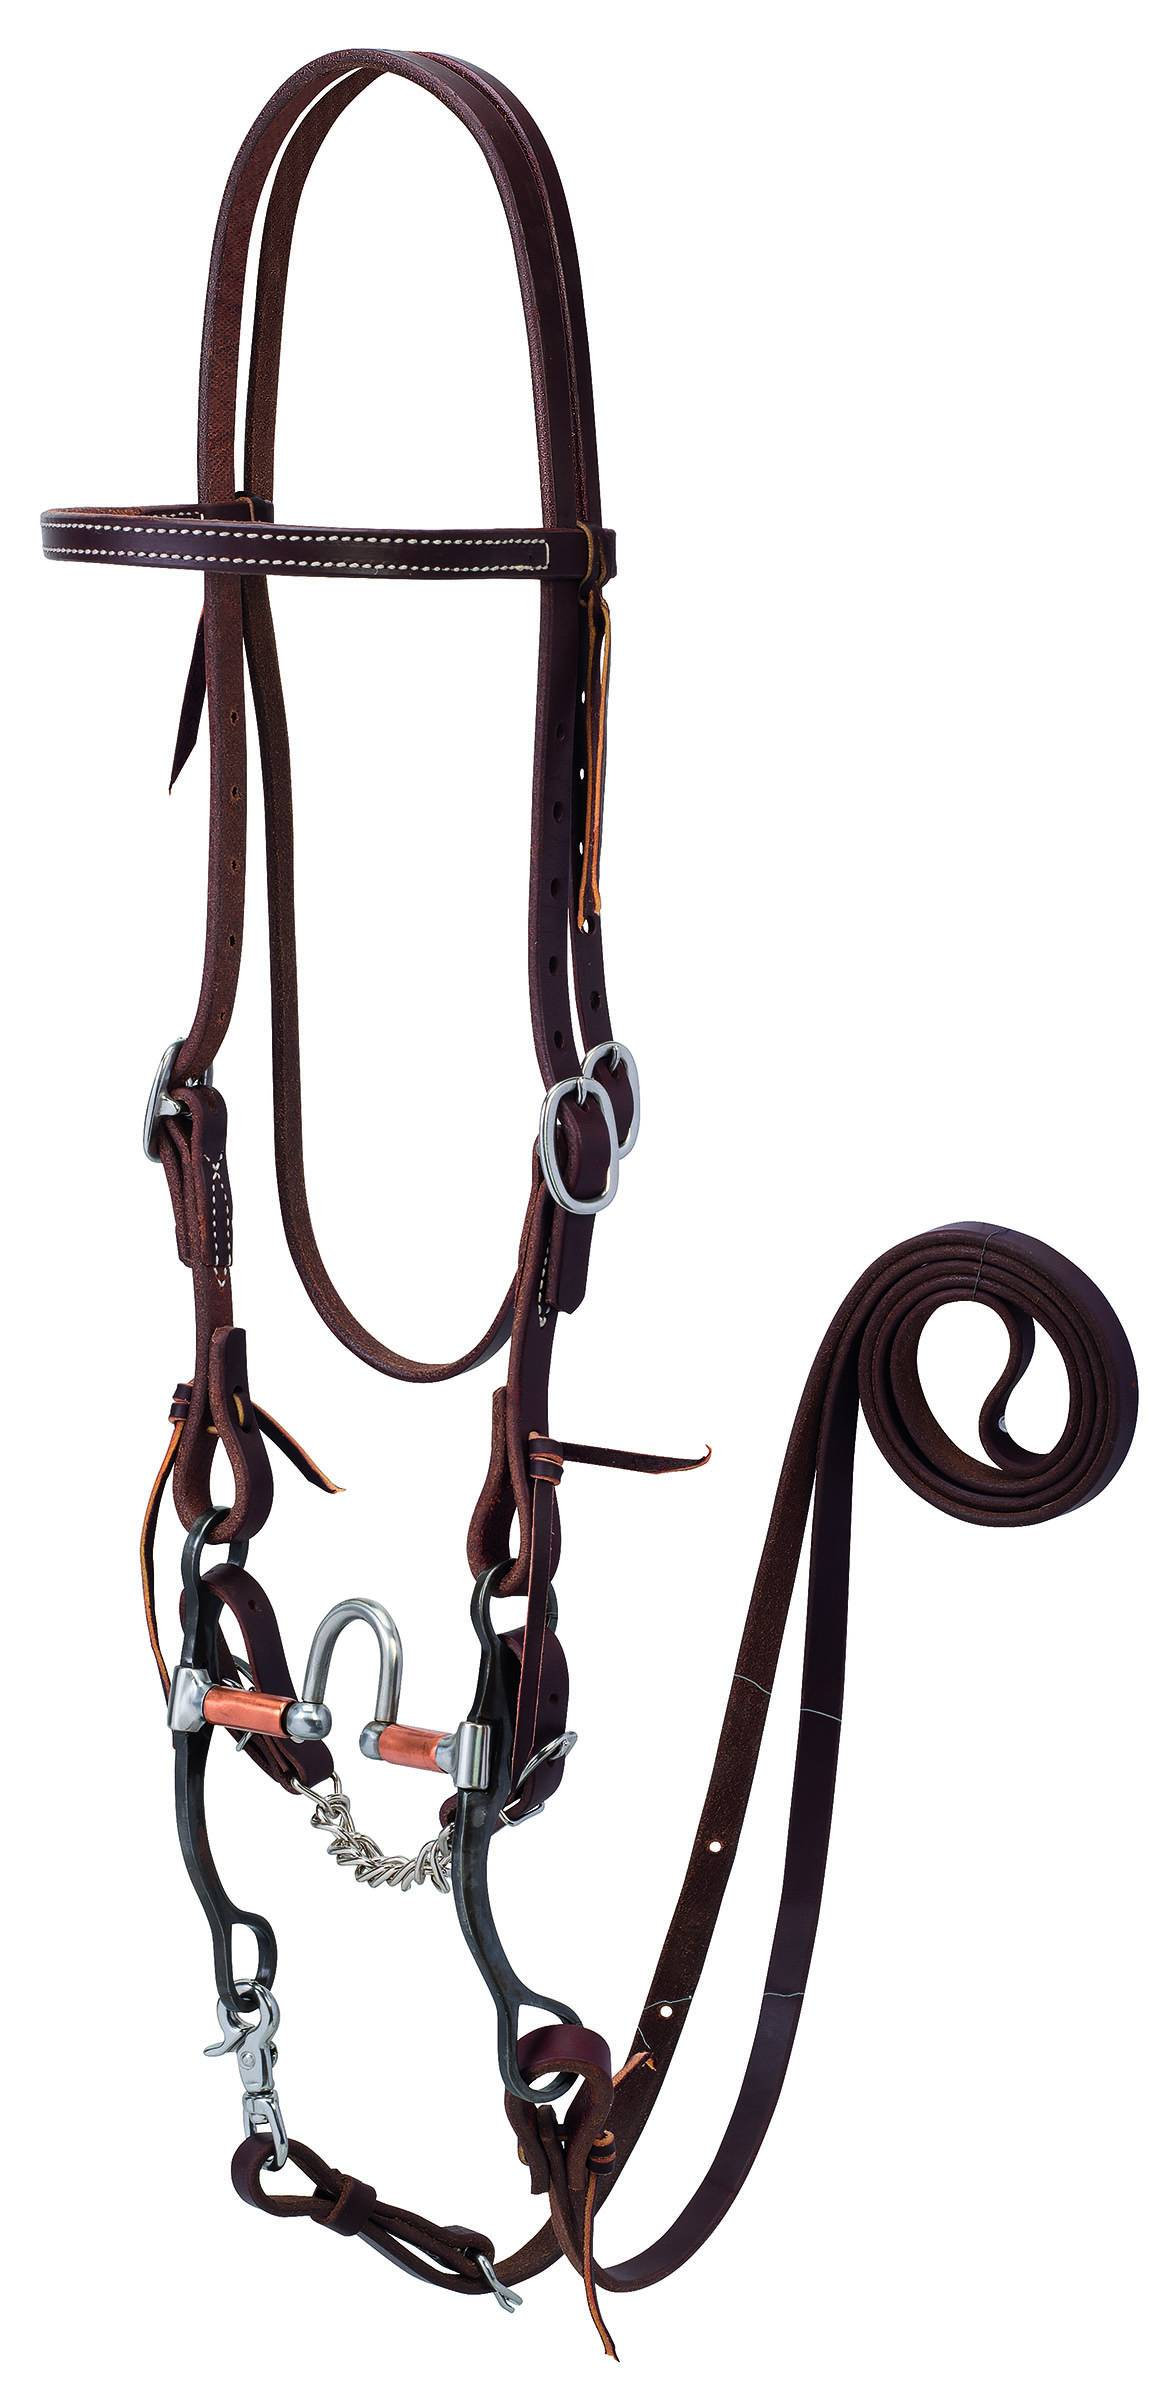 Weaver Working Tack Bridle With Correction Mouth Bit